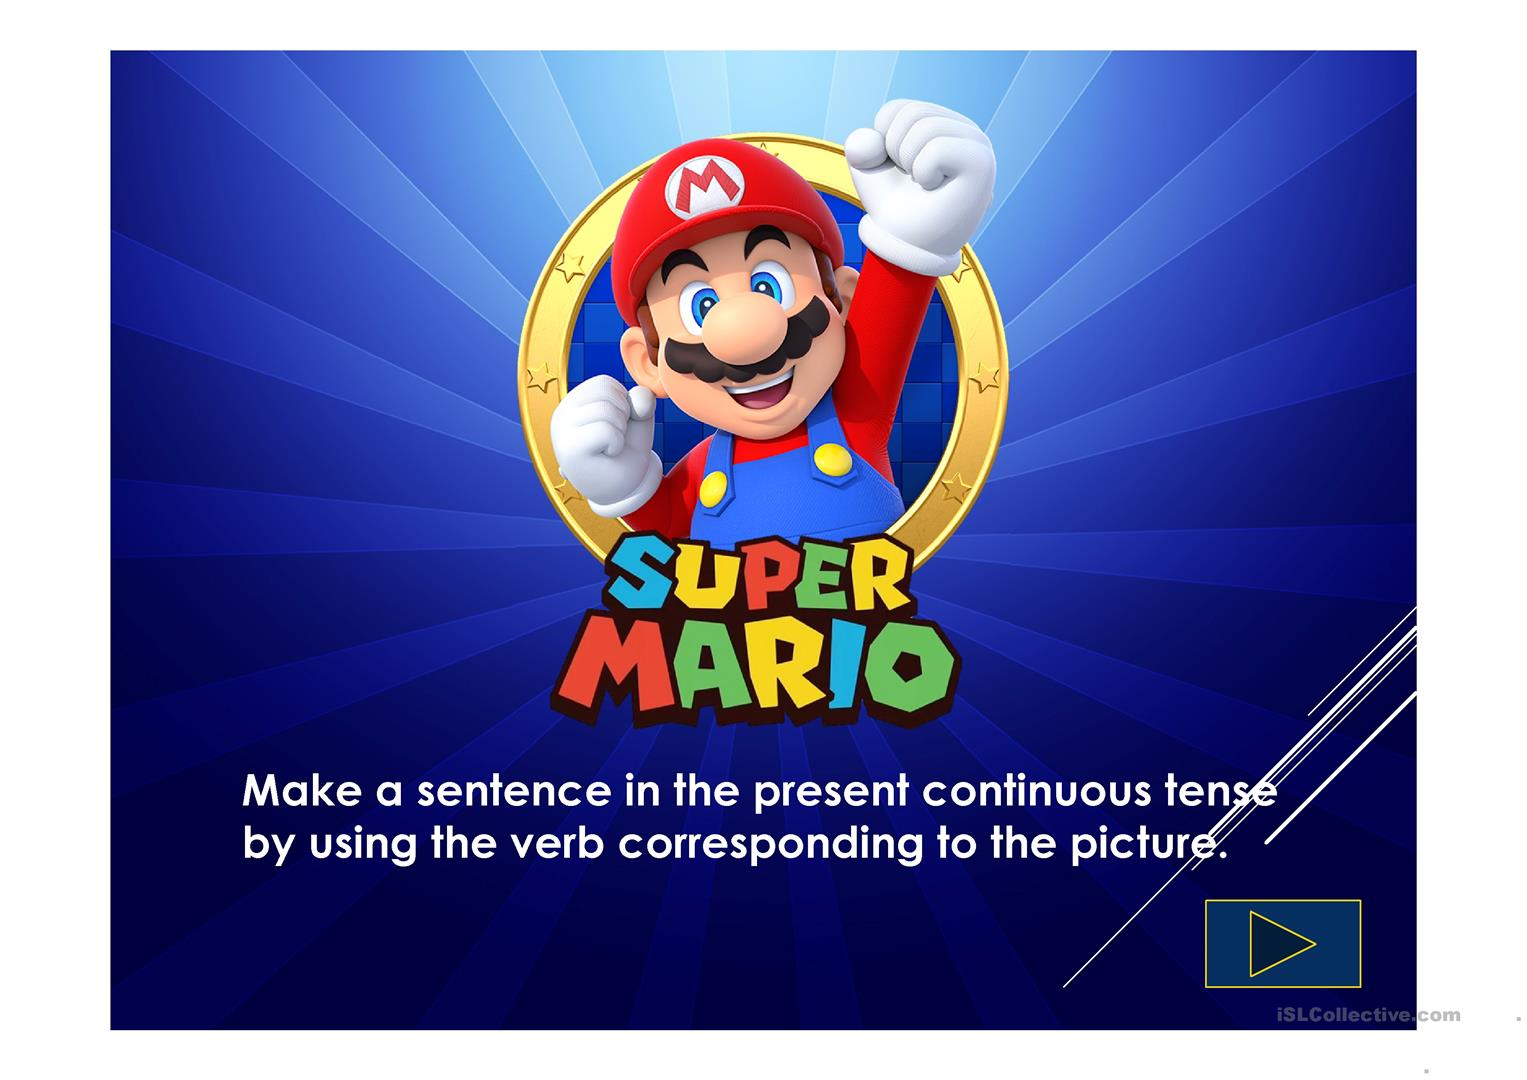 What Is Super Mario Doing